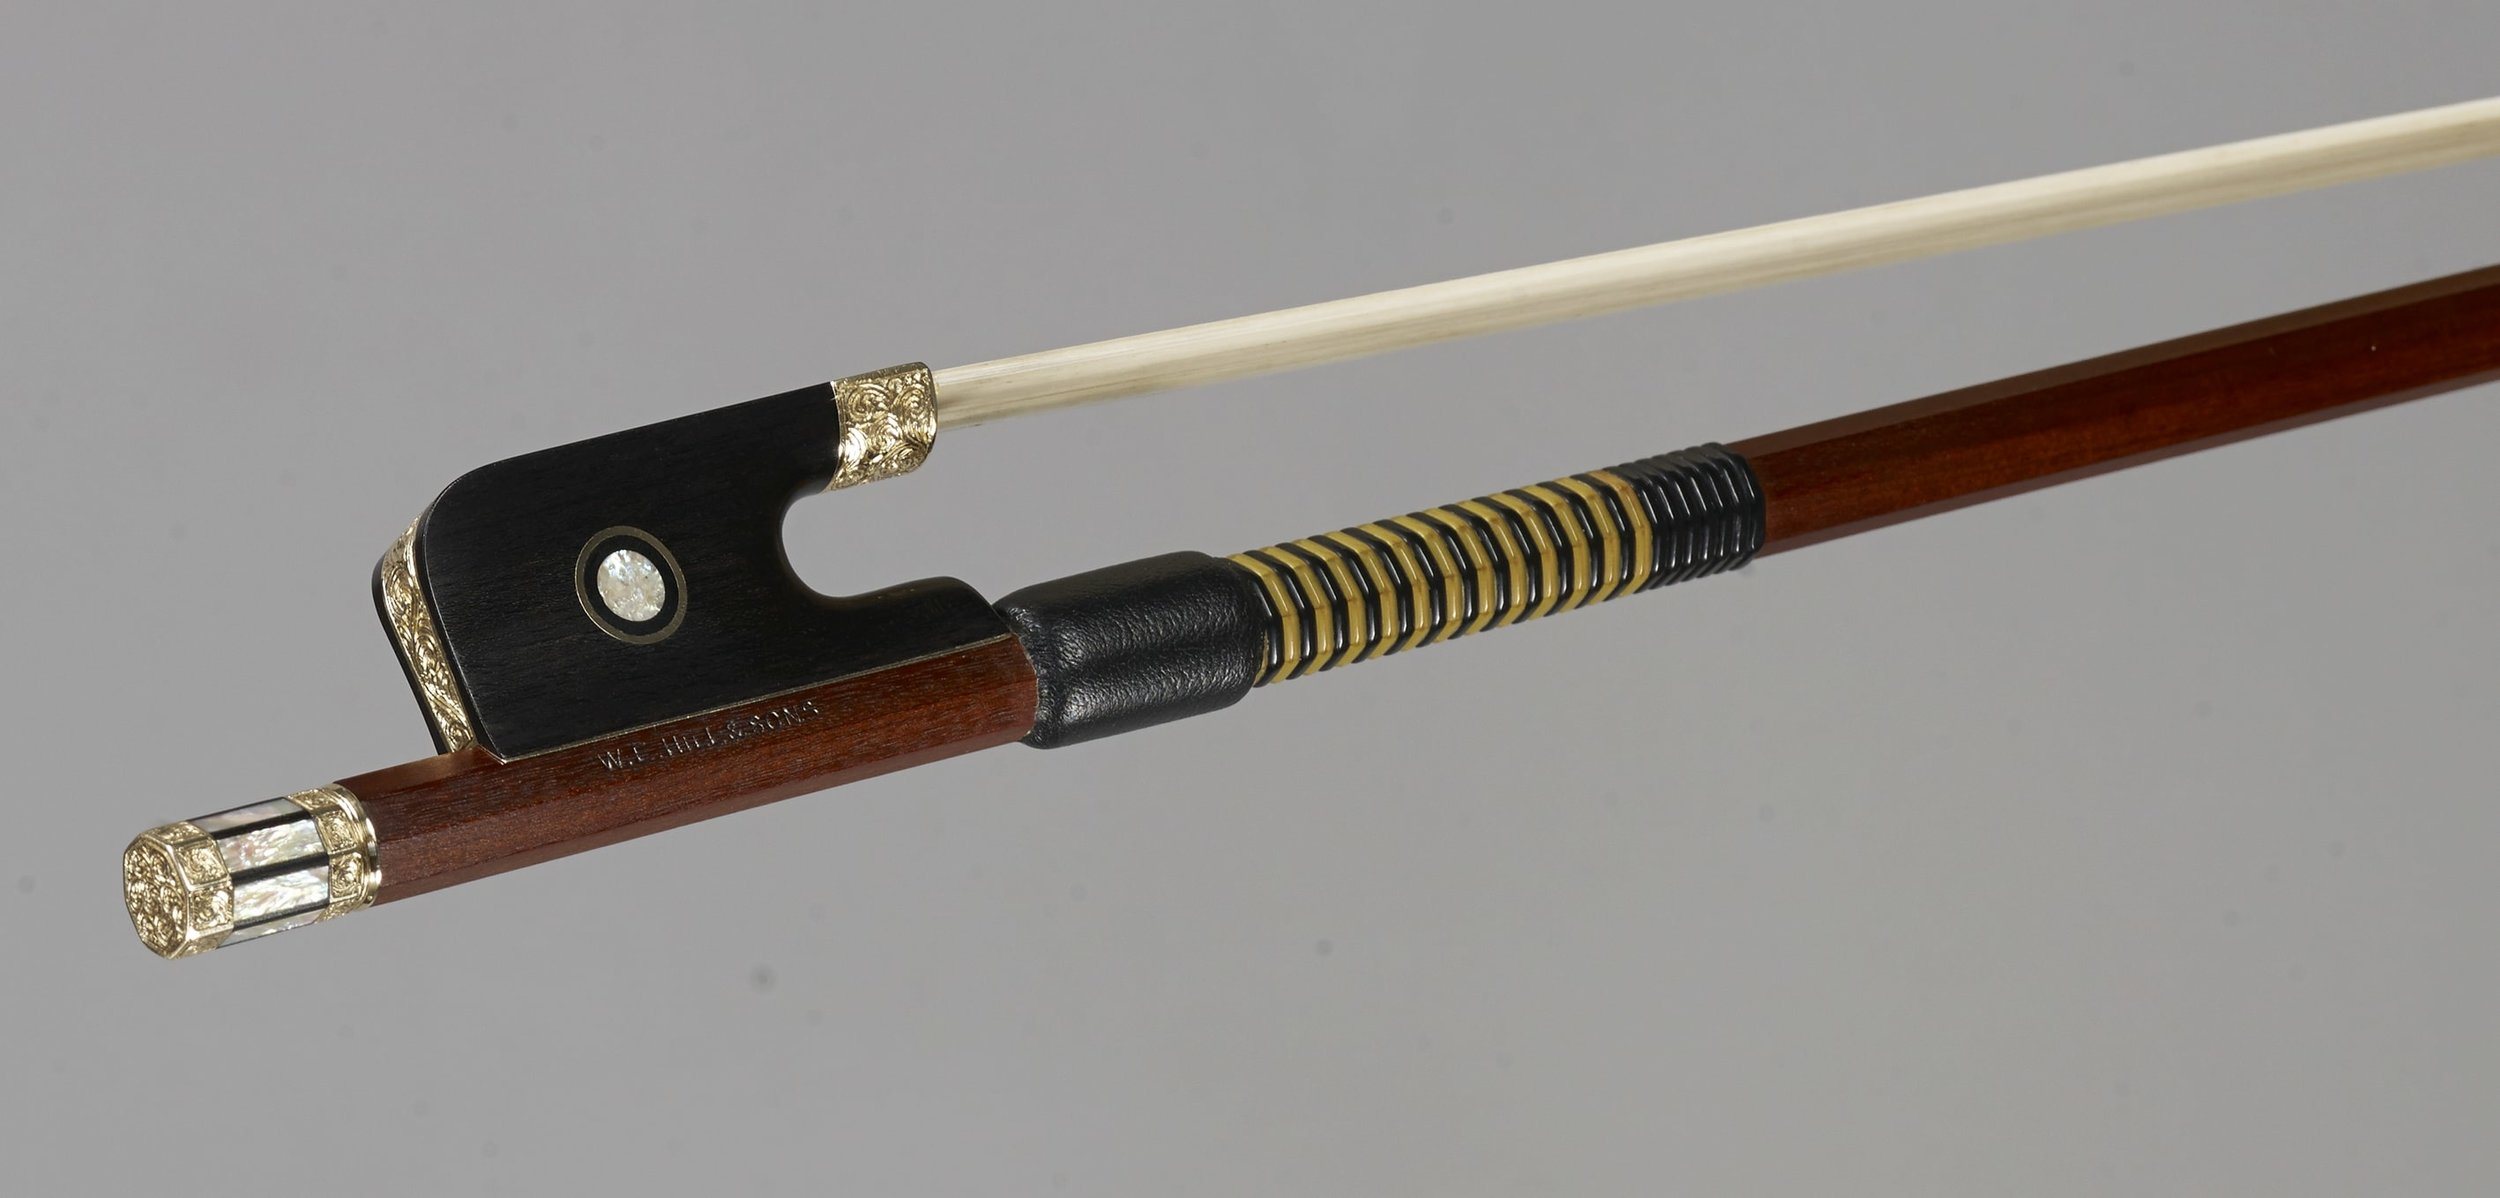 Gold Engraved Cello Bow (2018) by W. E. Hill & Sons